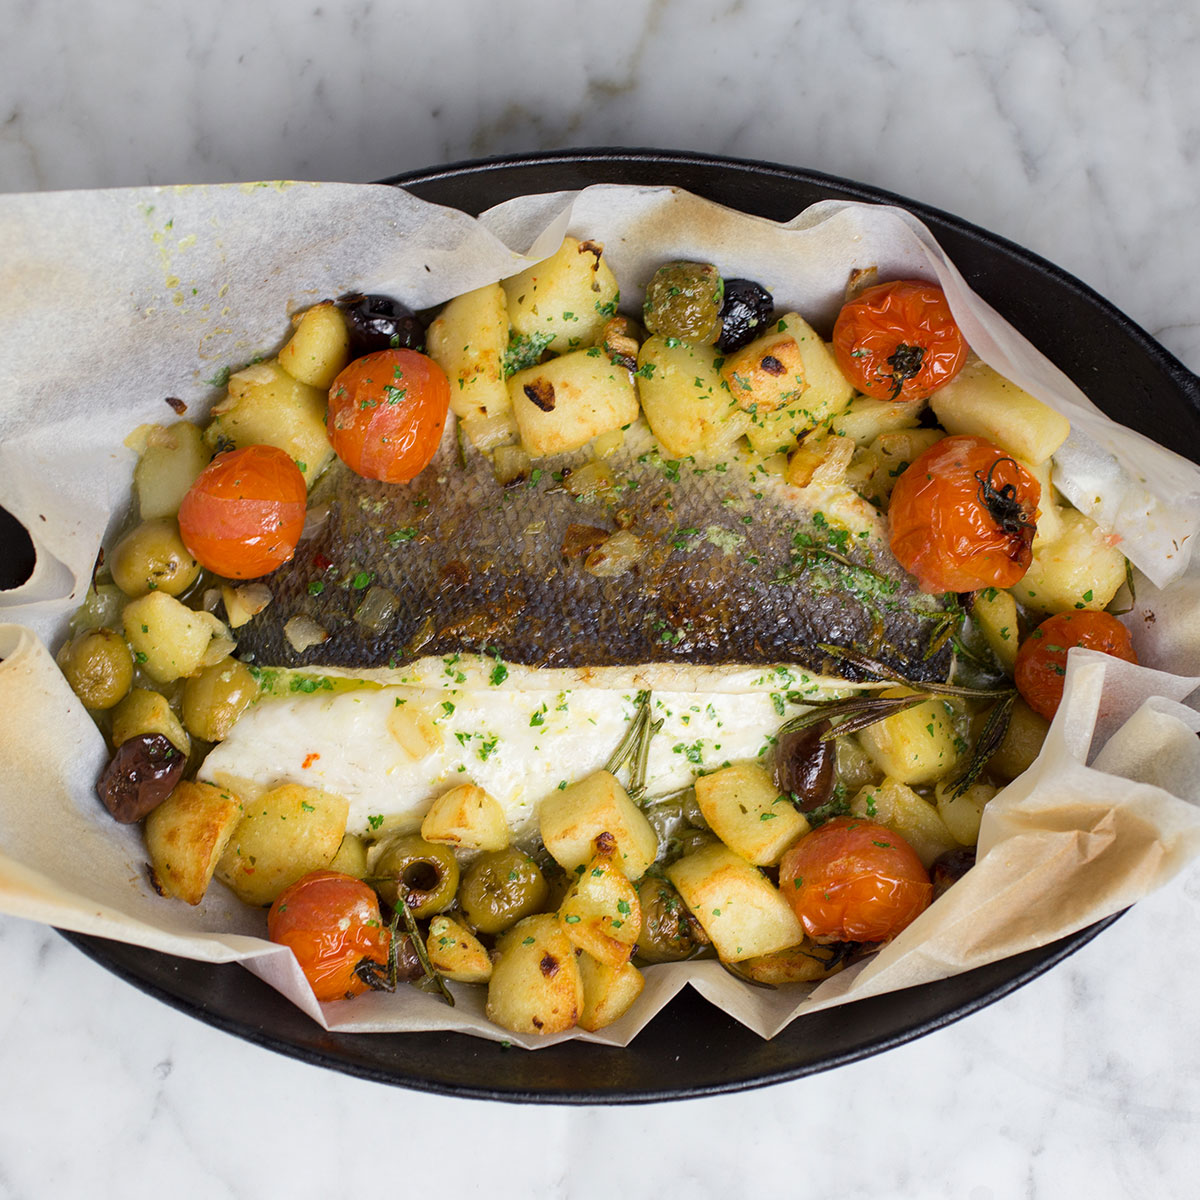 iceland-oven-baked-sea-bass-food-news-good-housekeeping